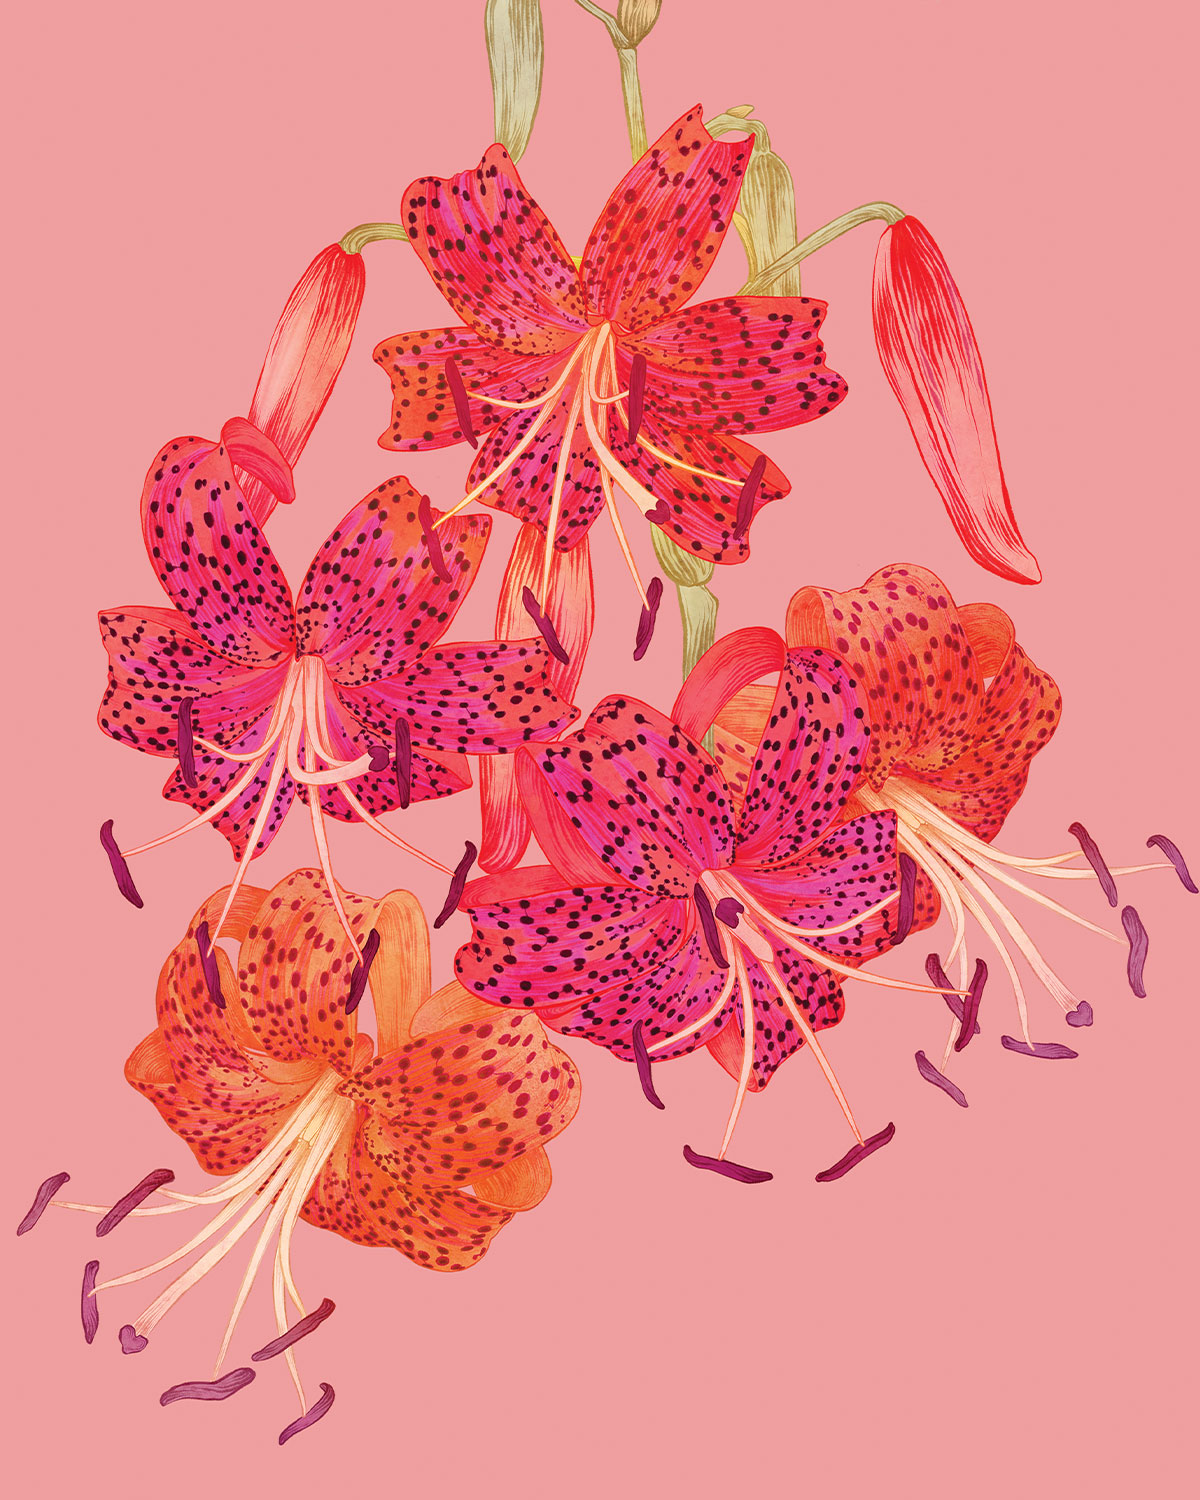 petal book extract web image